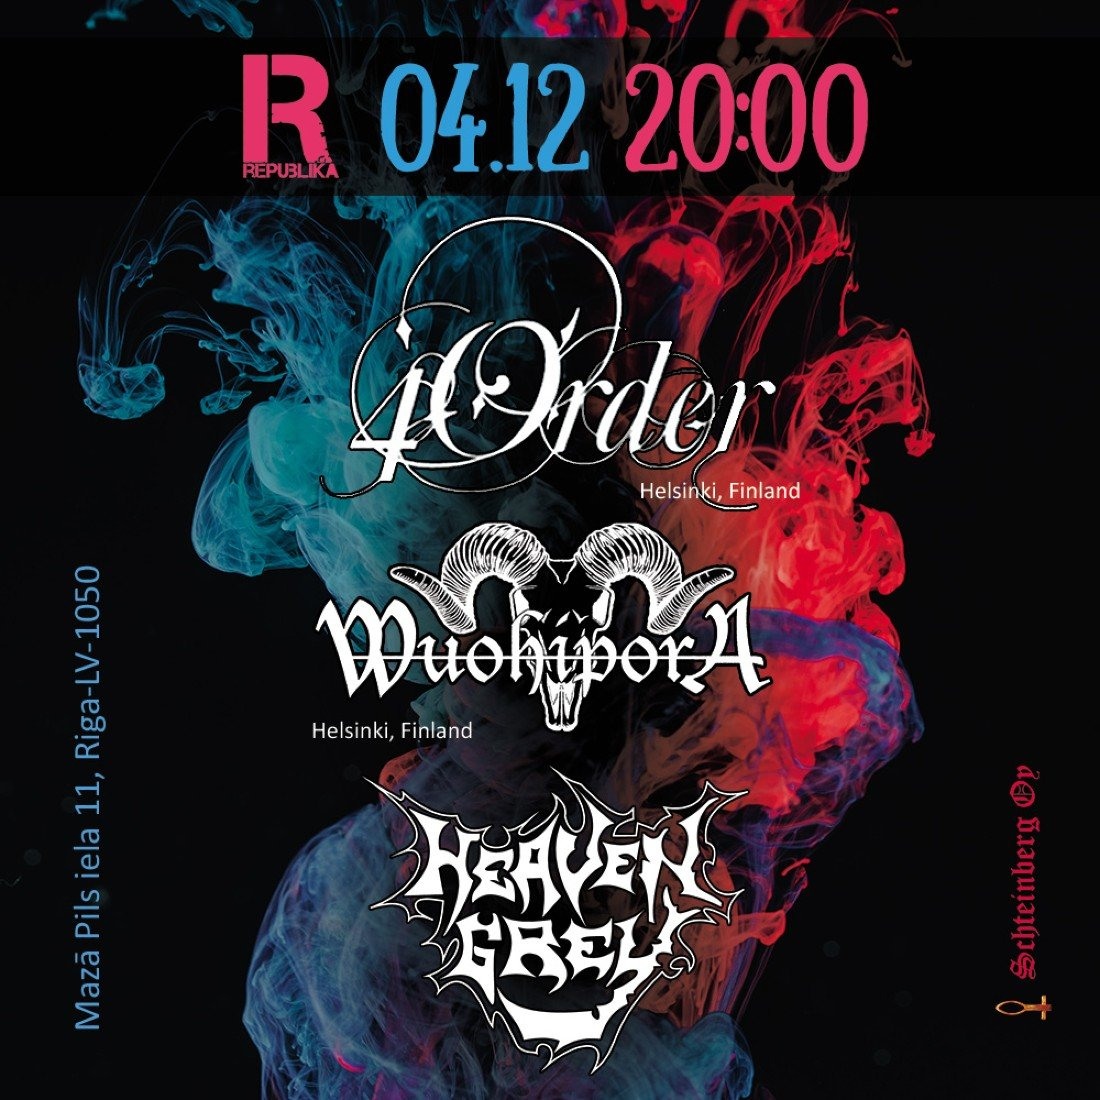 Wuohipora, 4Order (both Finland) and Heaven Grey in Riga, 4 December | Event in RIGA | AllEvents.in